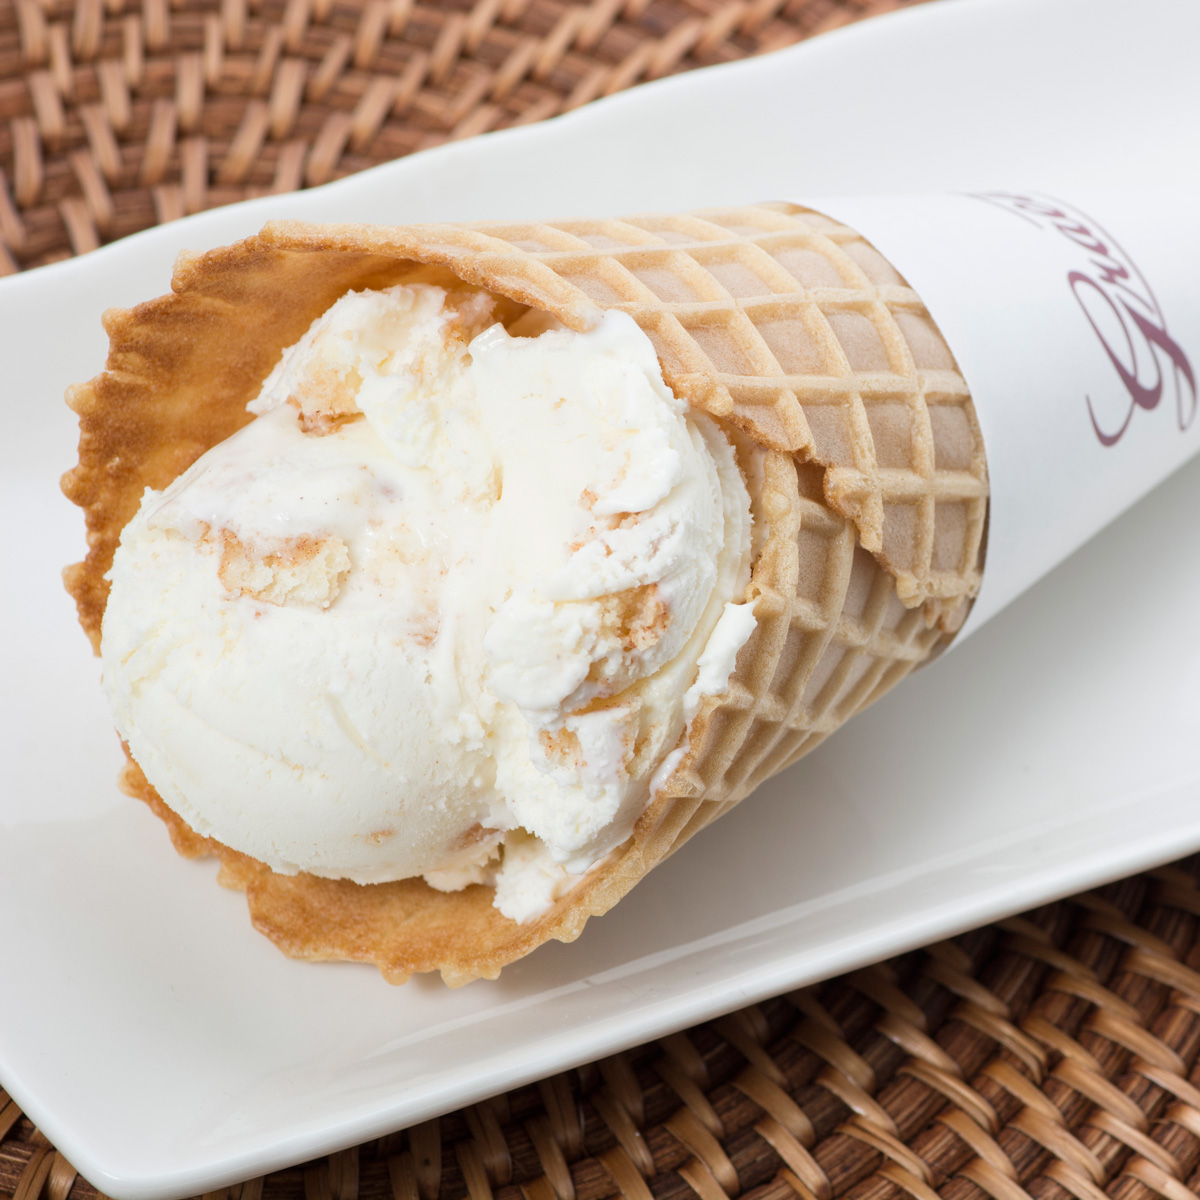 Best Ice Cream Spots in the U.S.: Ohio's Graeter's